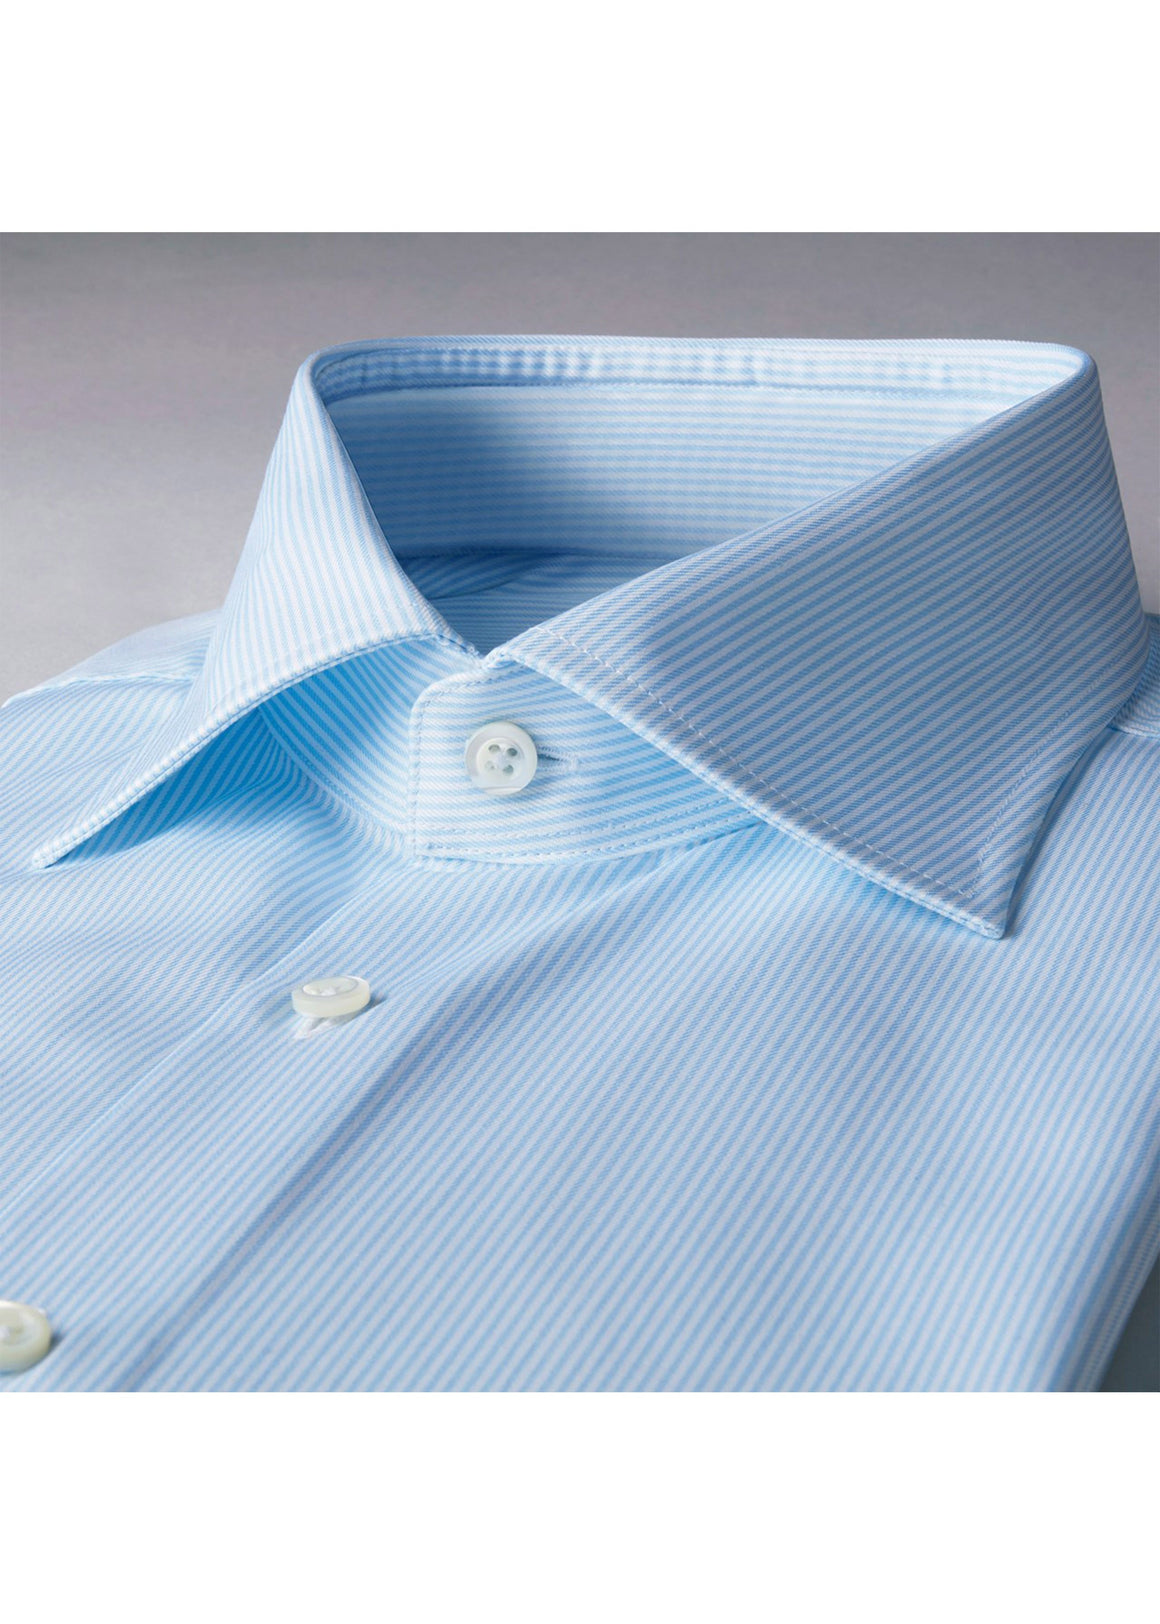 Stenstroms Light Blue Pinstriped Fitted Body Shirt